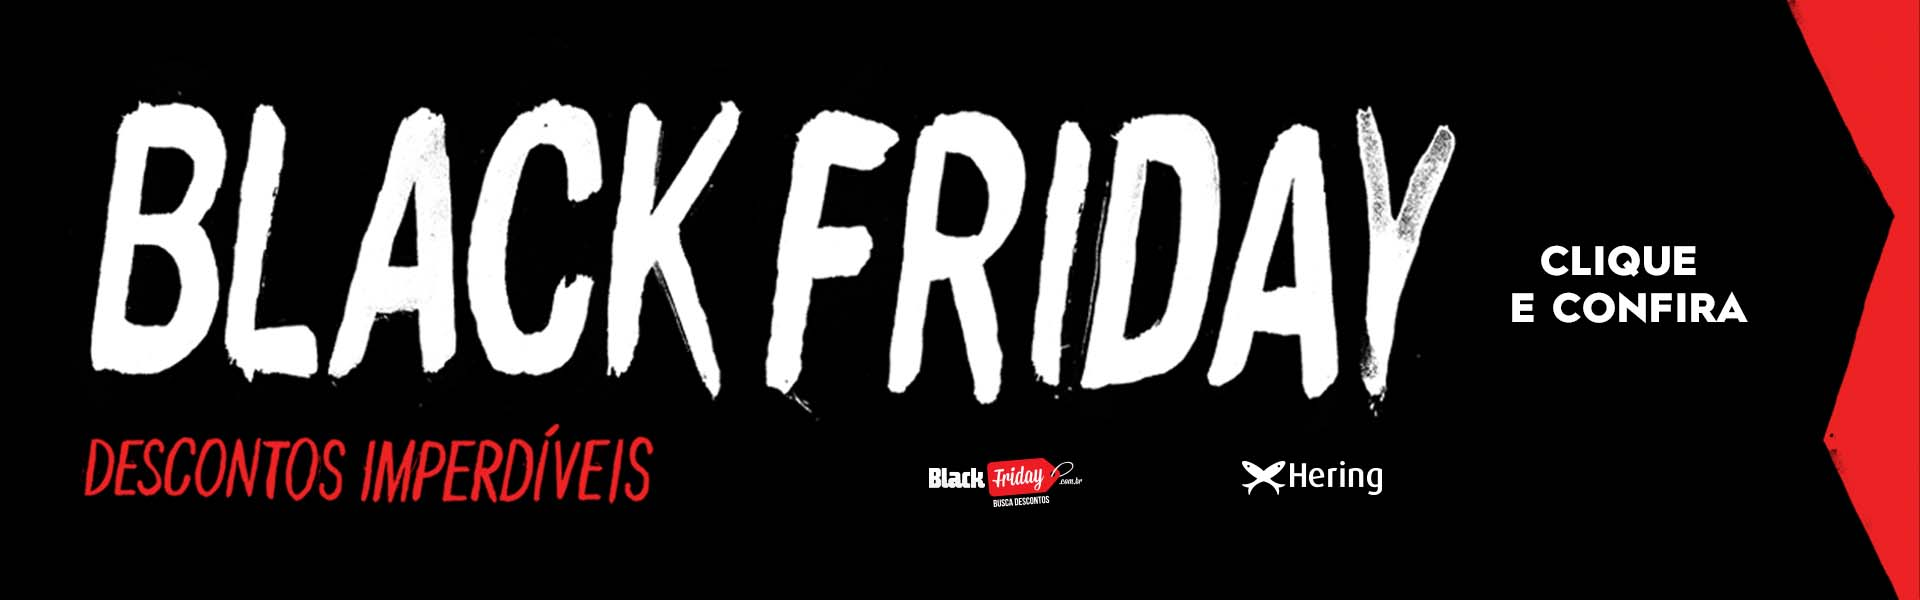 banner-black-friday-HOME.jpg